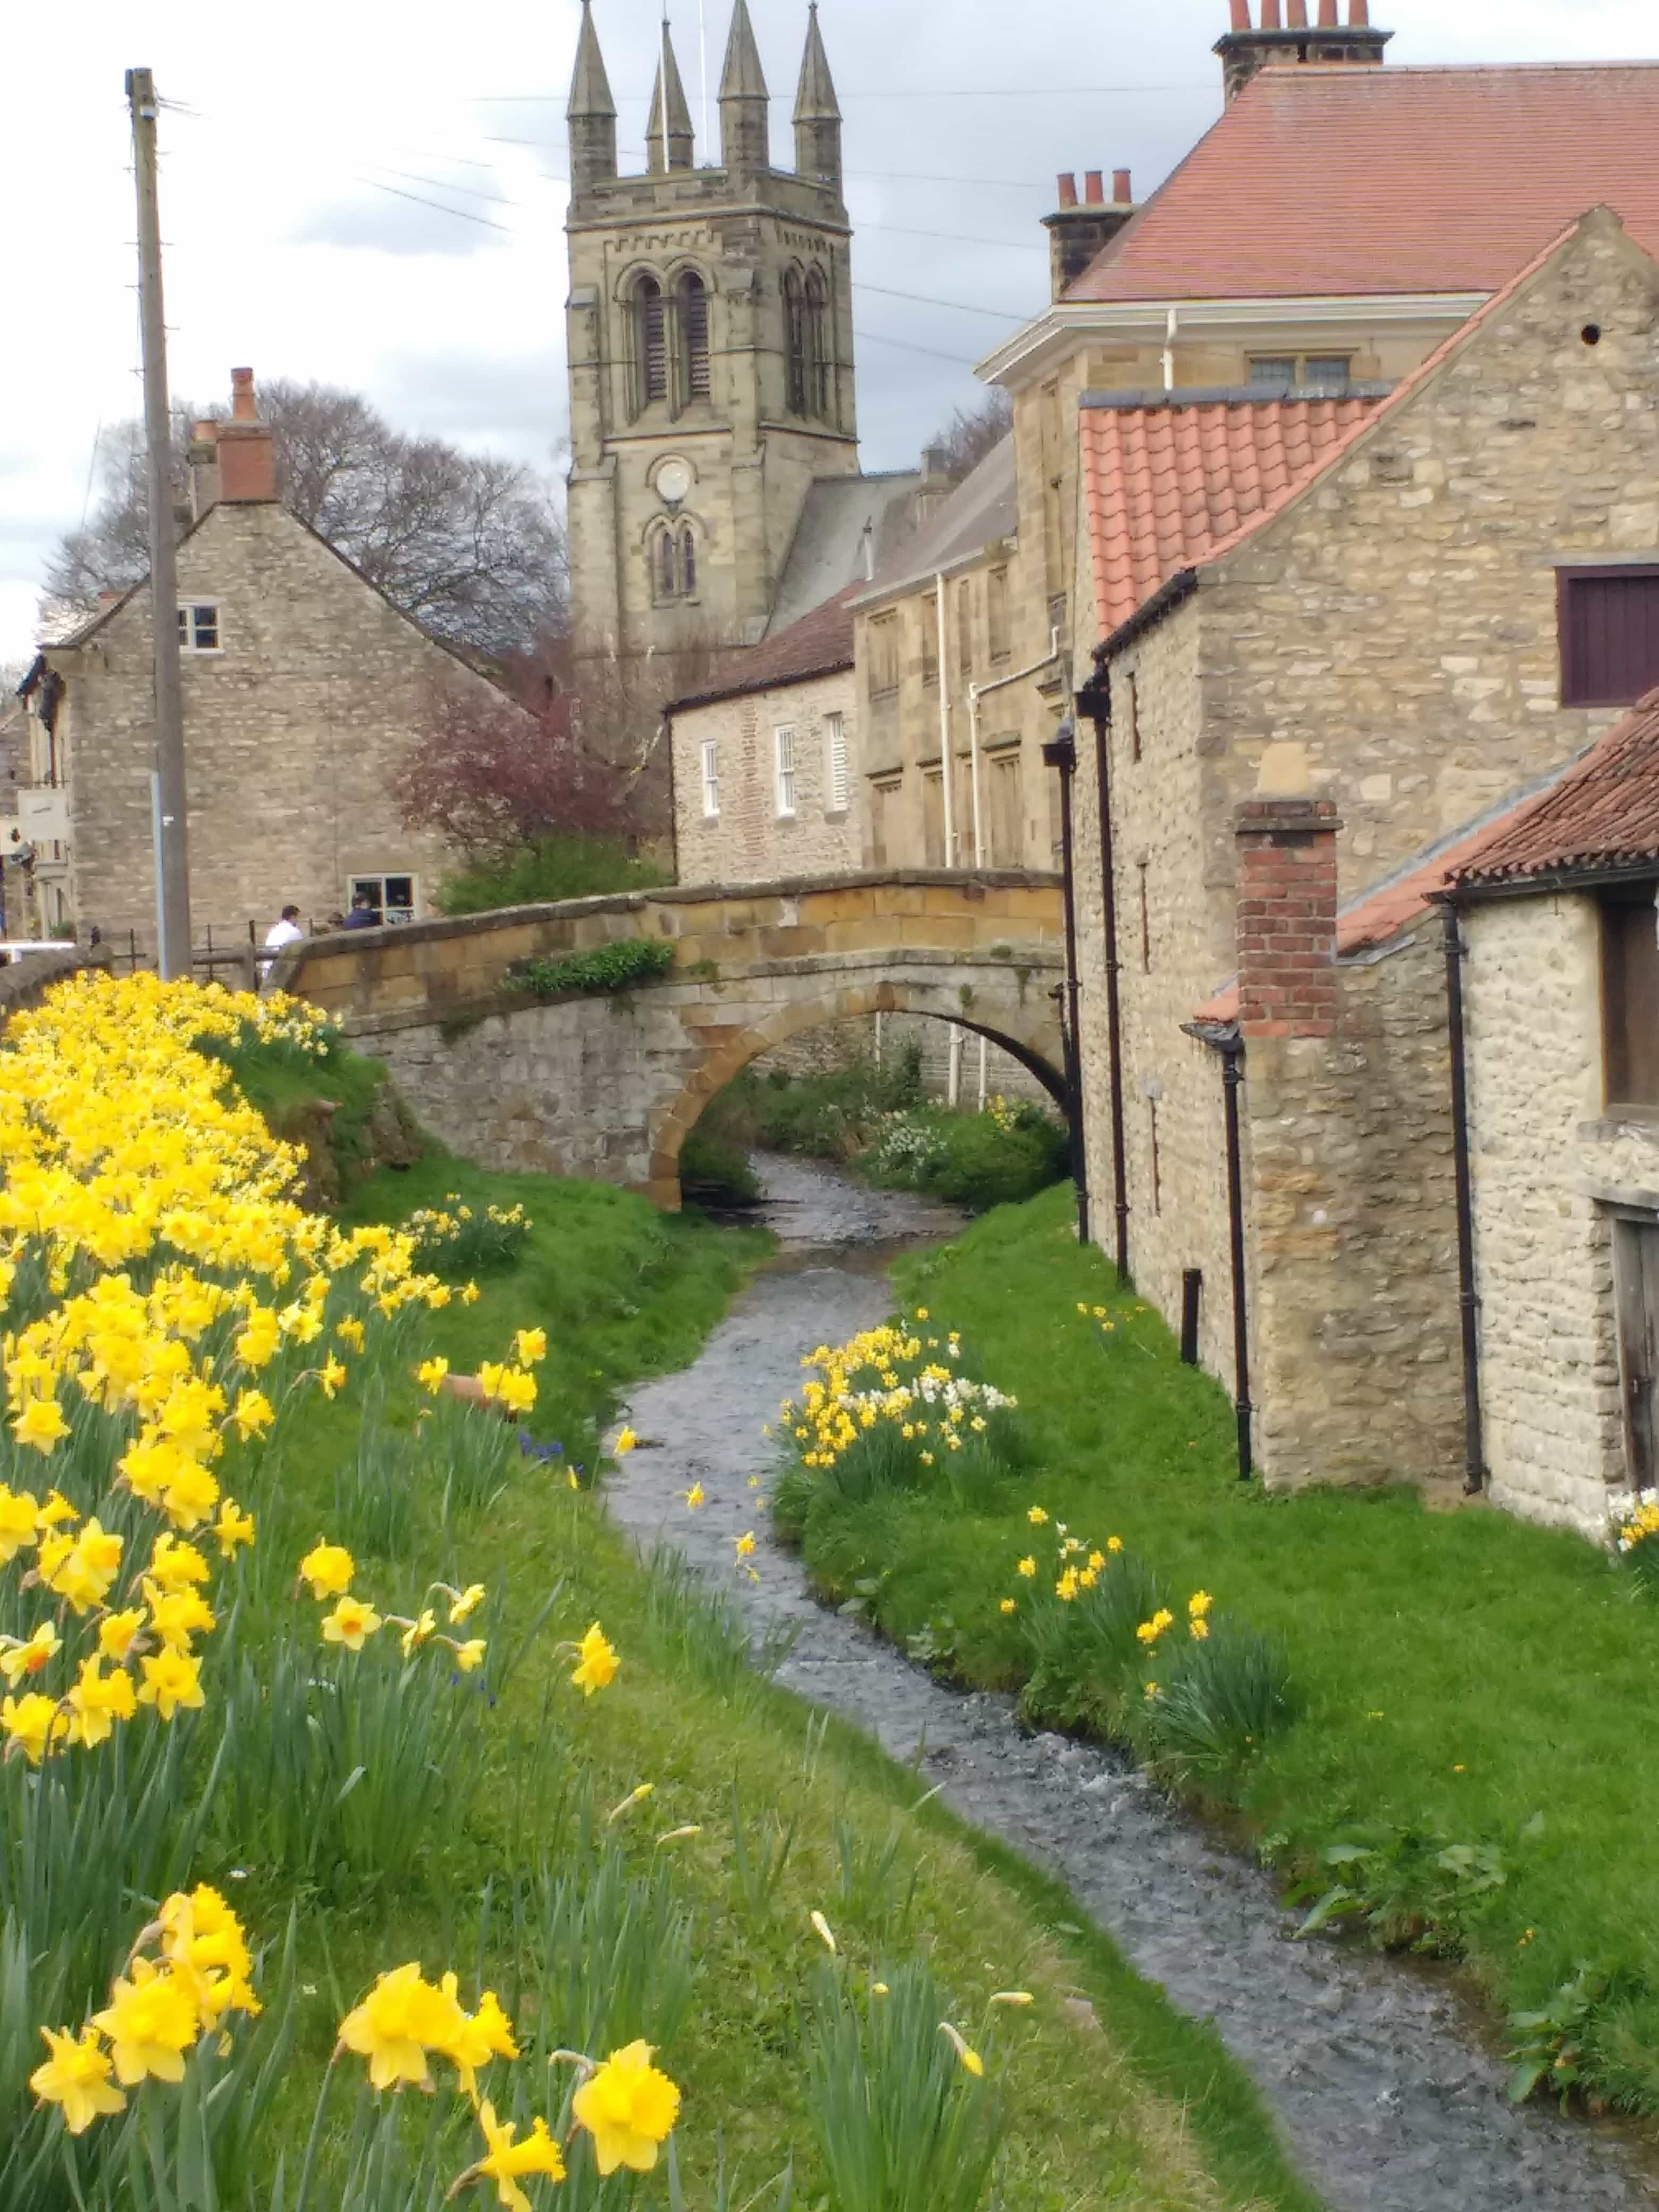 spring daffodils blooming in Yorkshire